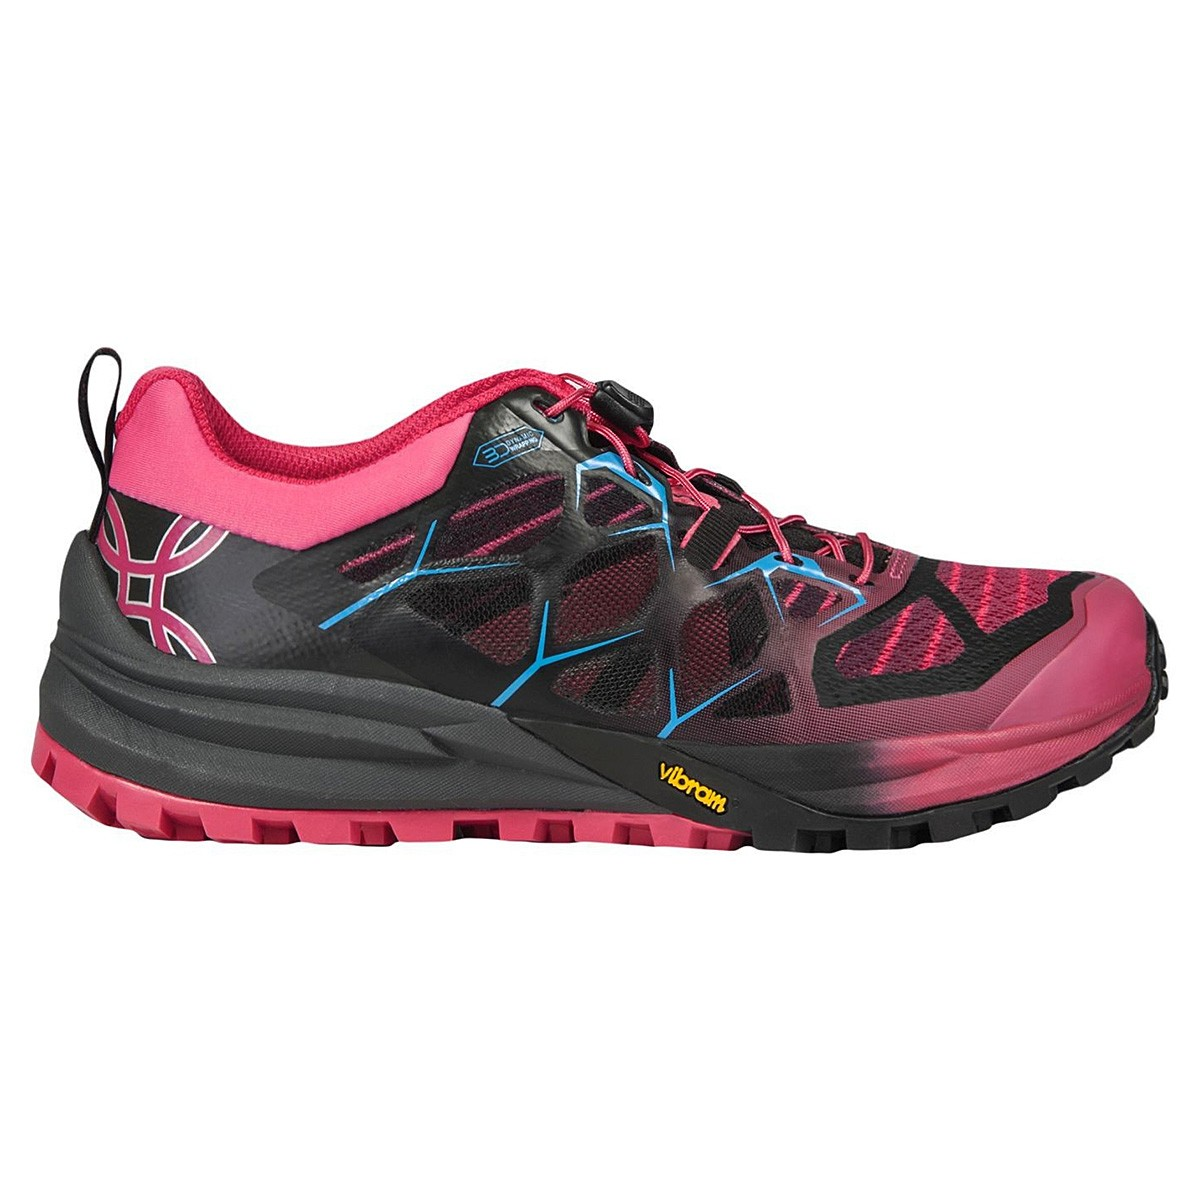 chaussures trail running montura flash femme chaussures montagne. Black Bedroom Furniture Sets. Home Design Ideas